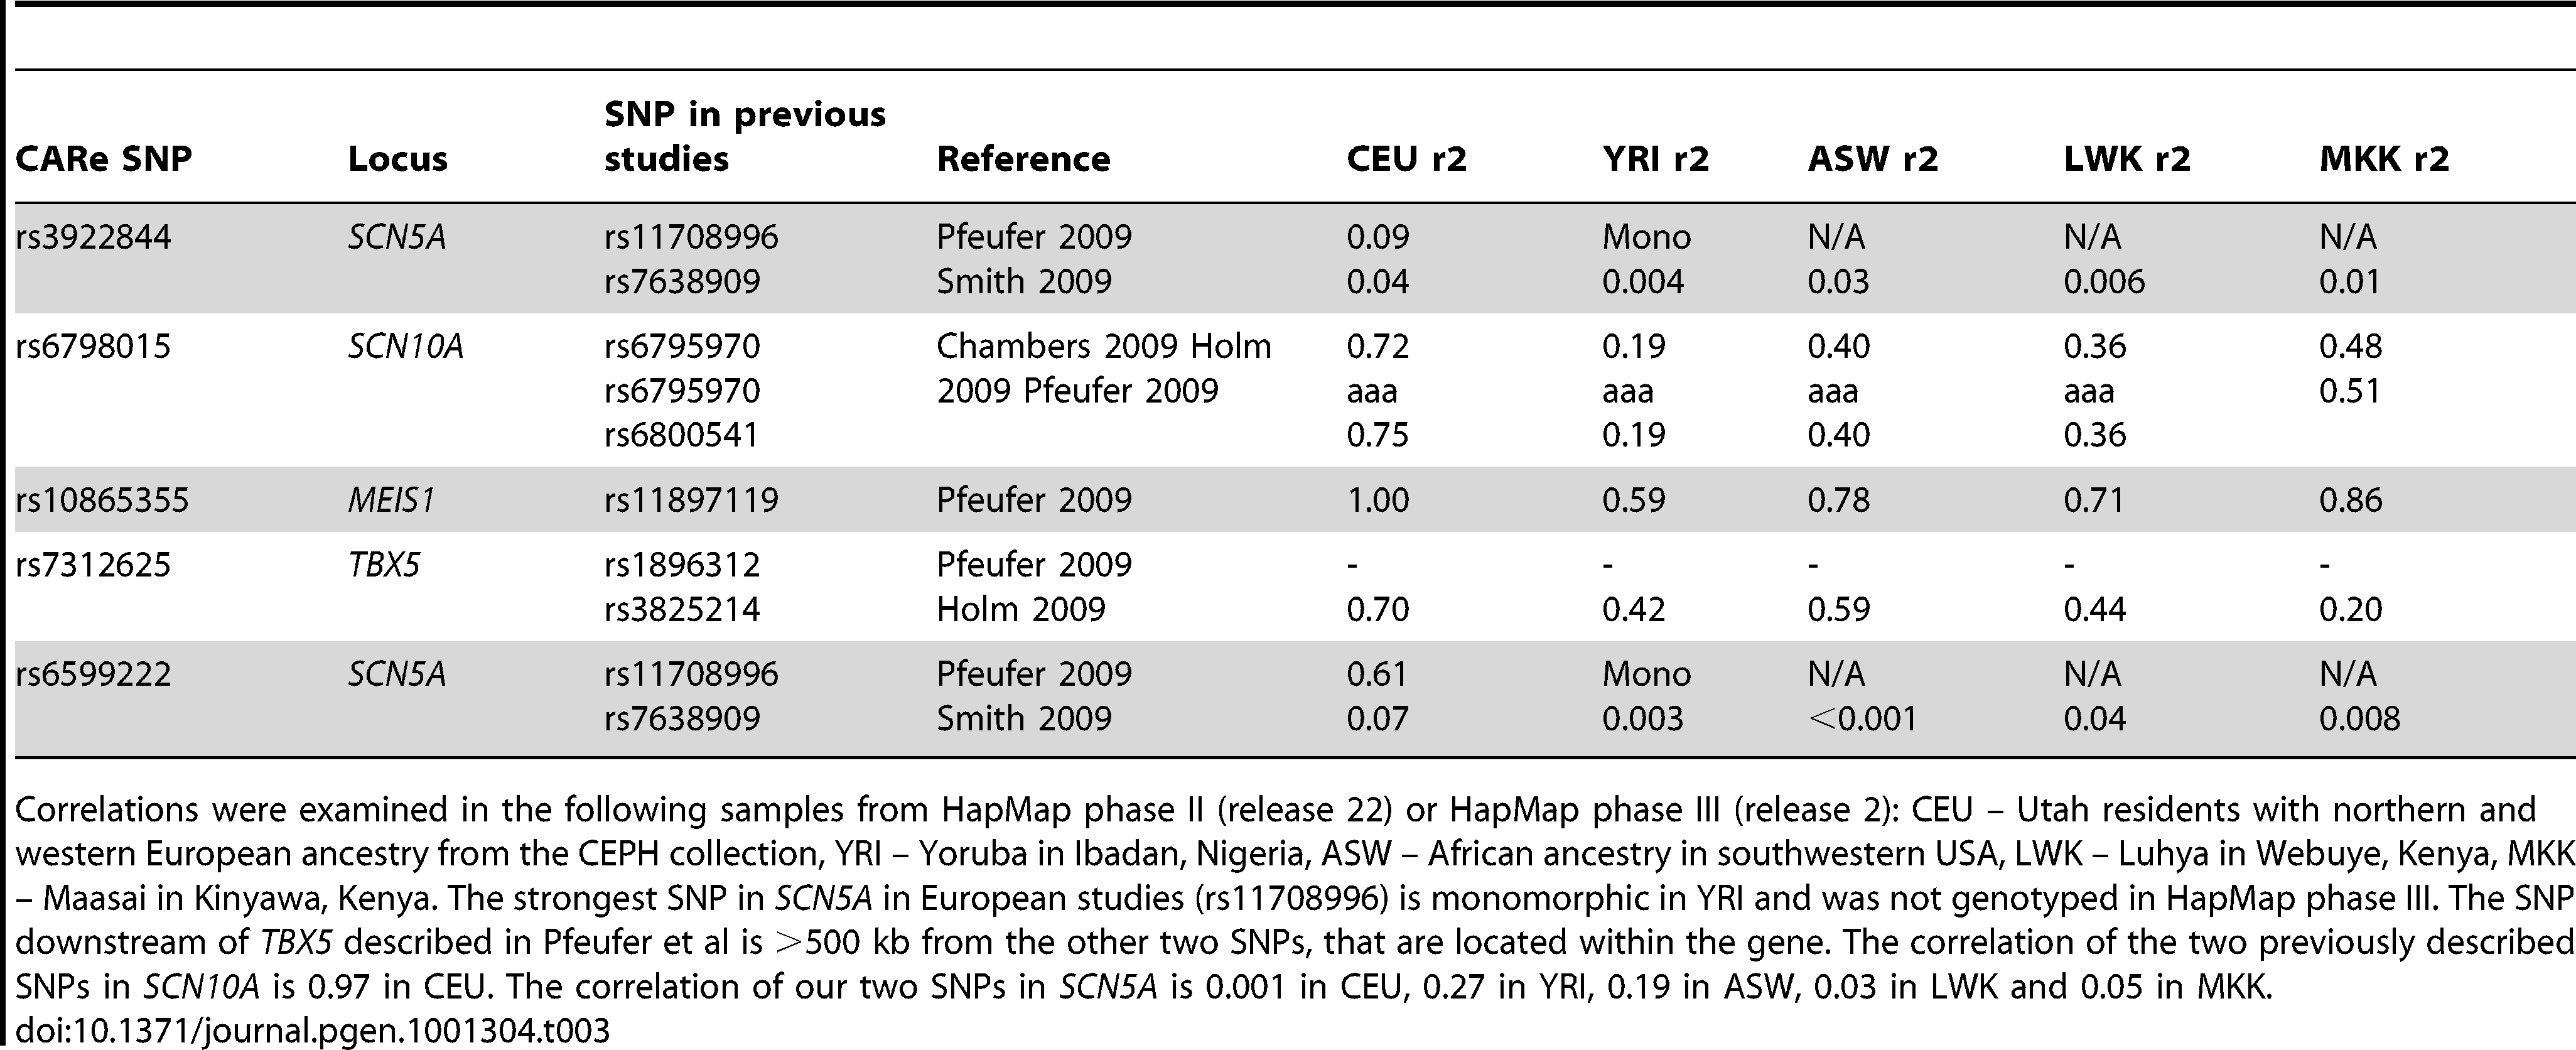 Correlation of the SNPs with the lowest p-value in each cluster of SNPs reaching genome-wide significance in CARe to SNPs reaching genome-wide significance in previous European and Asian studies.